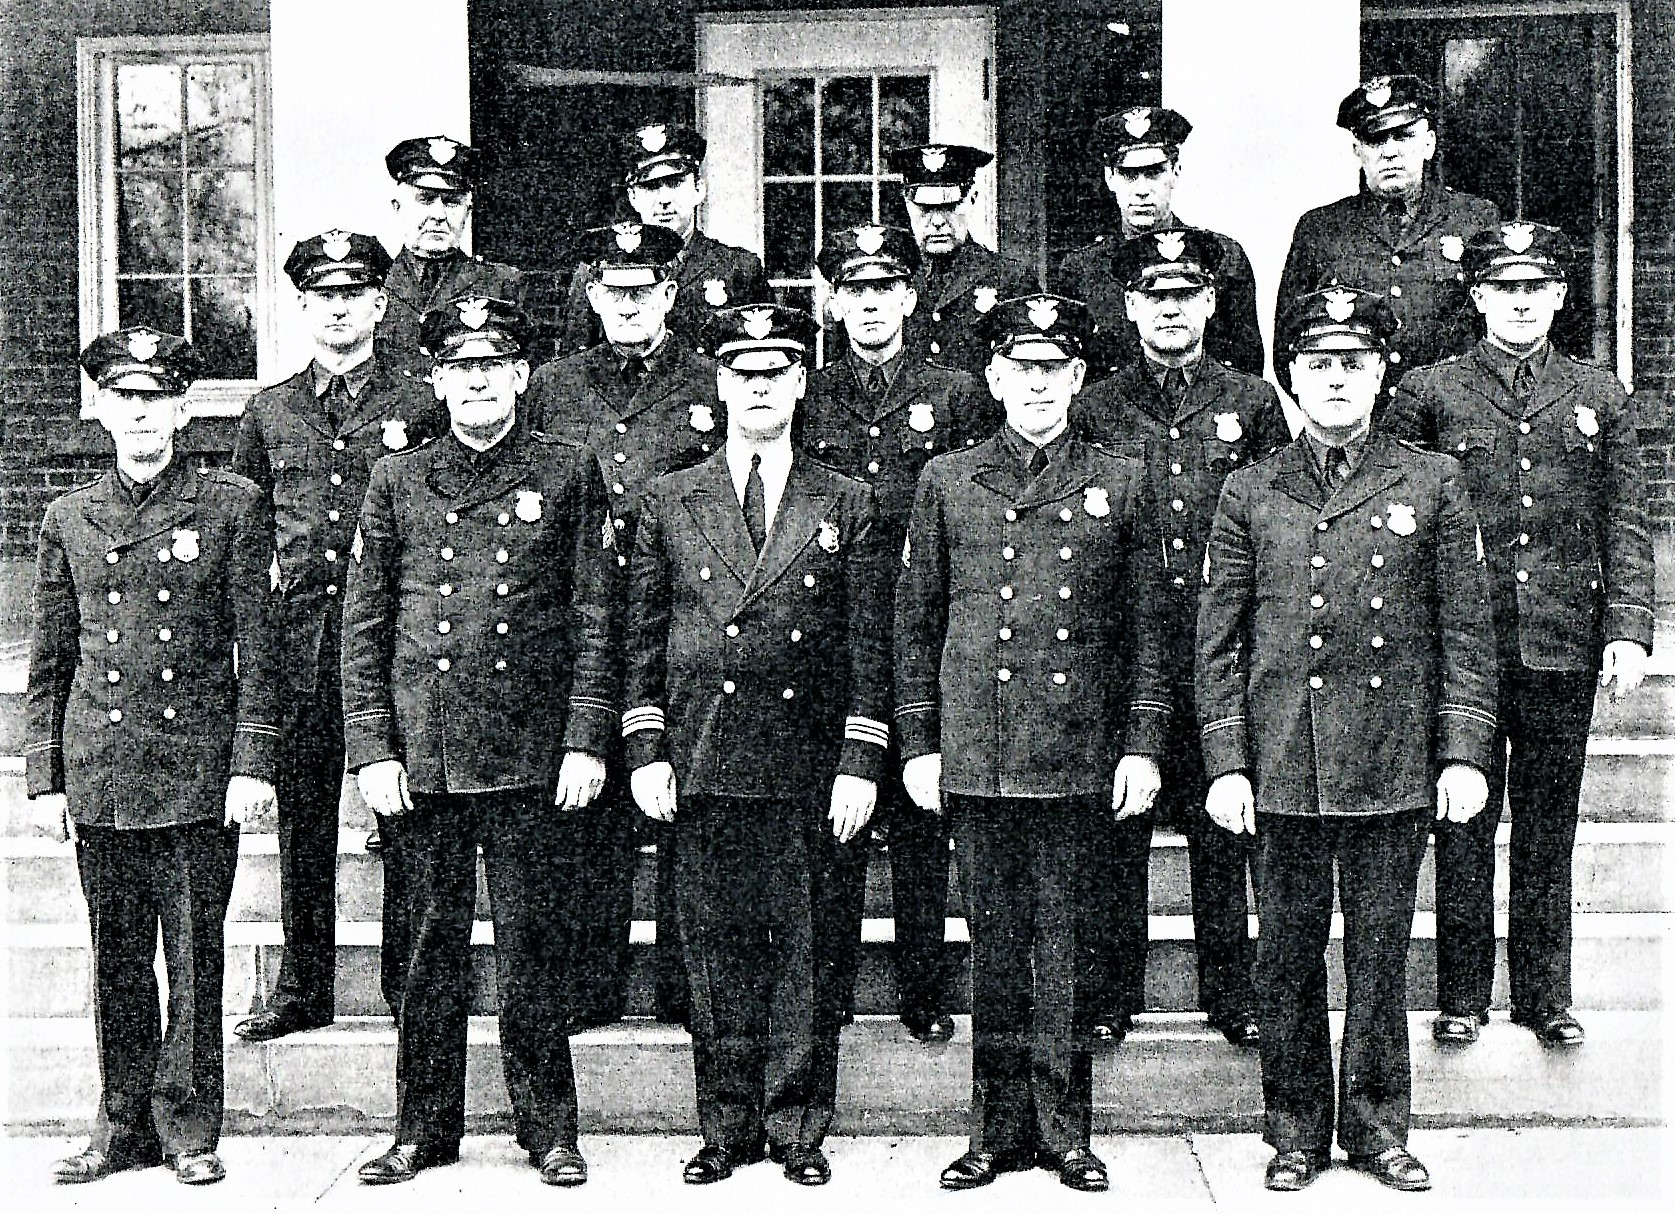 Police Officers 1941